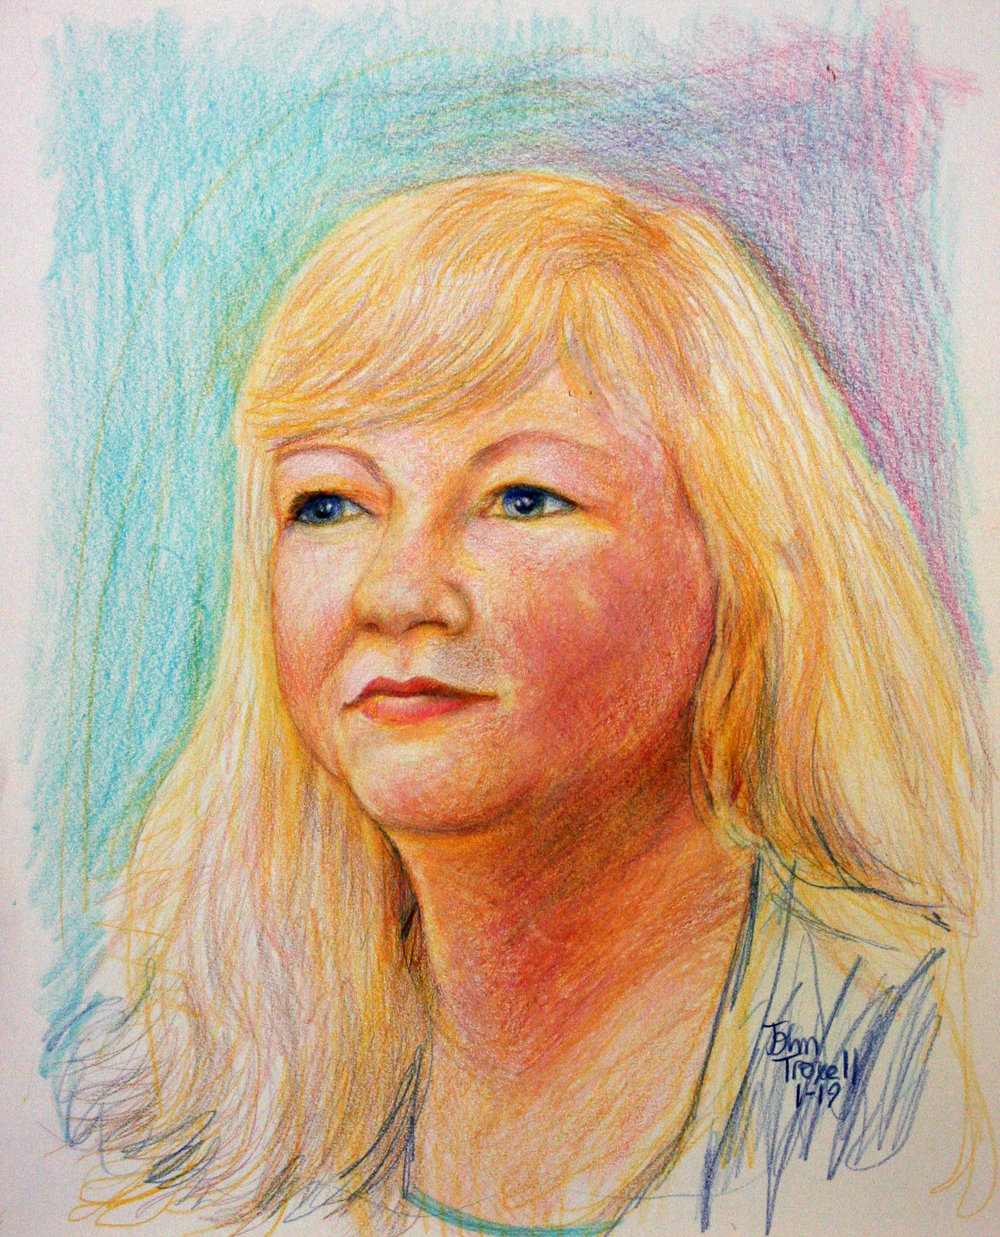 John Troxell did this colored pencil drawing.